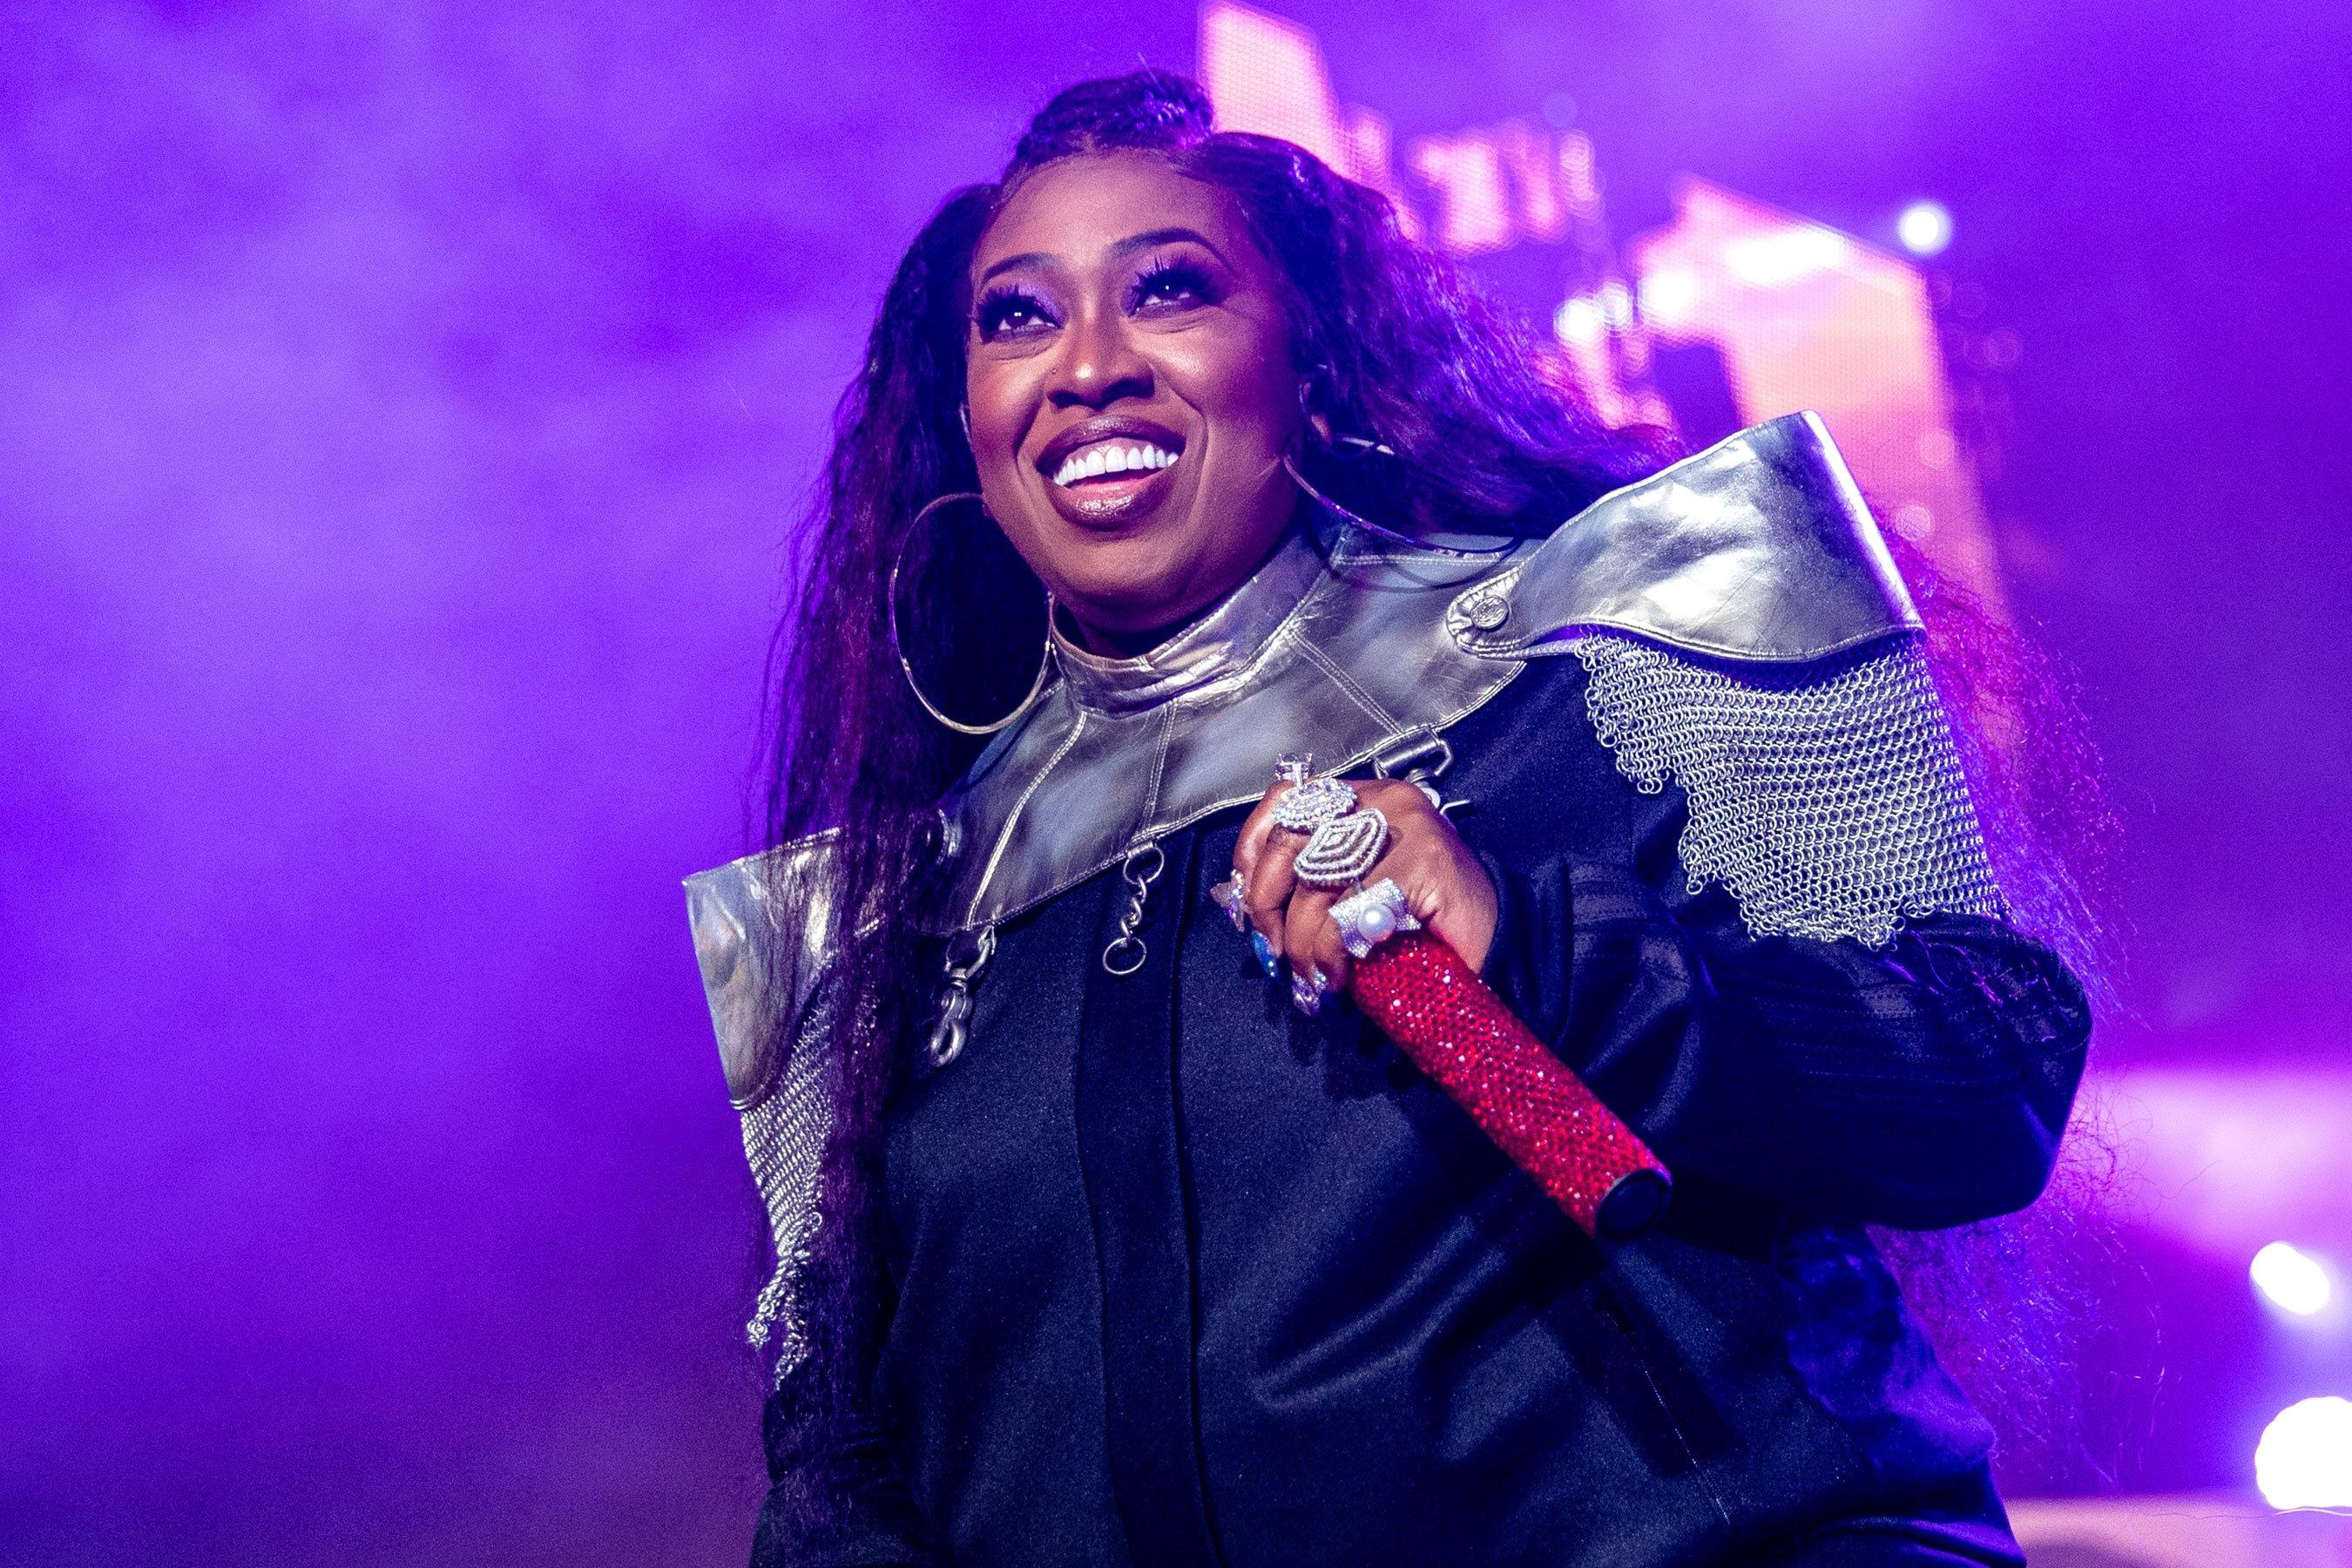 Missy Elliott is dropping her first collection of songs in over a decade